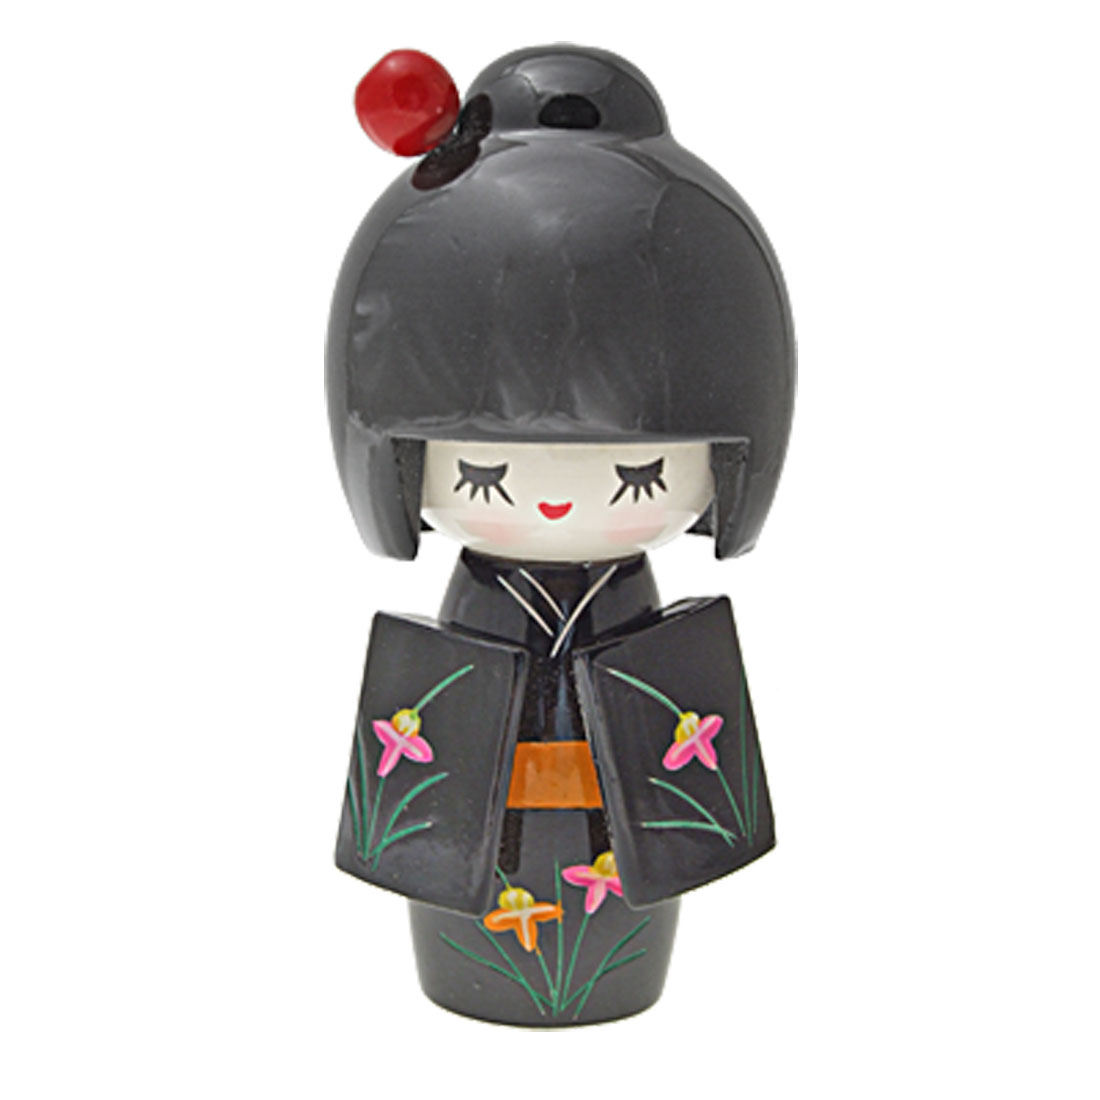 Flower Black Kimono Japanese Painted Wooden Kokeshi Doll Ornament